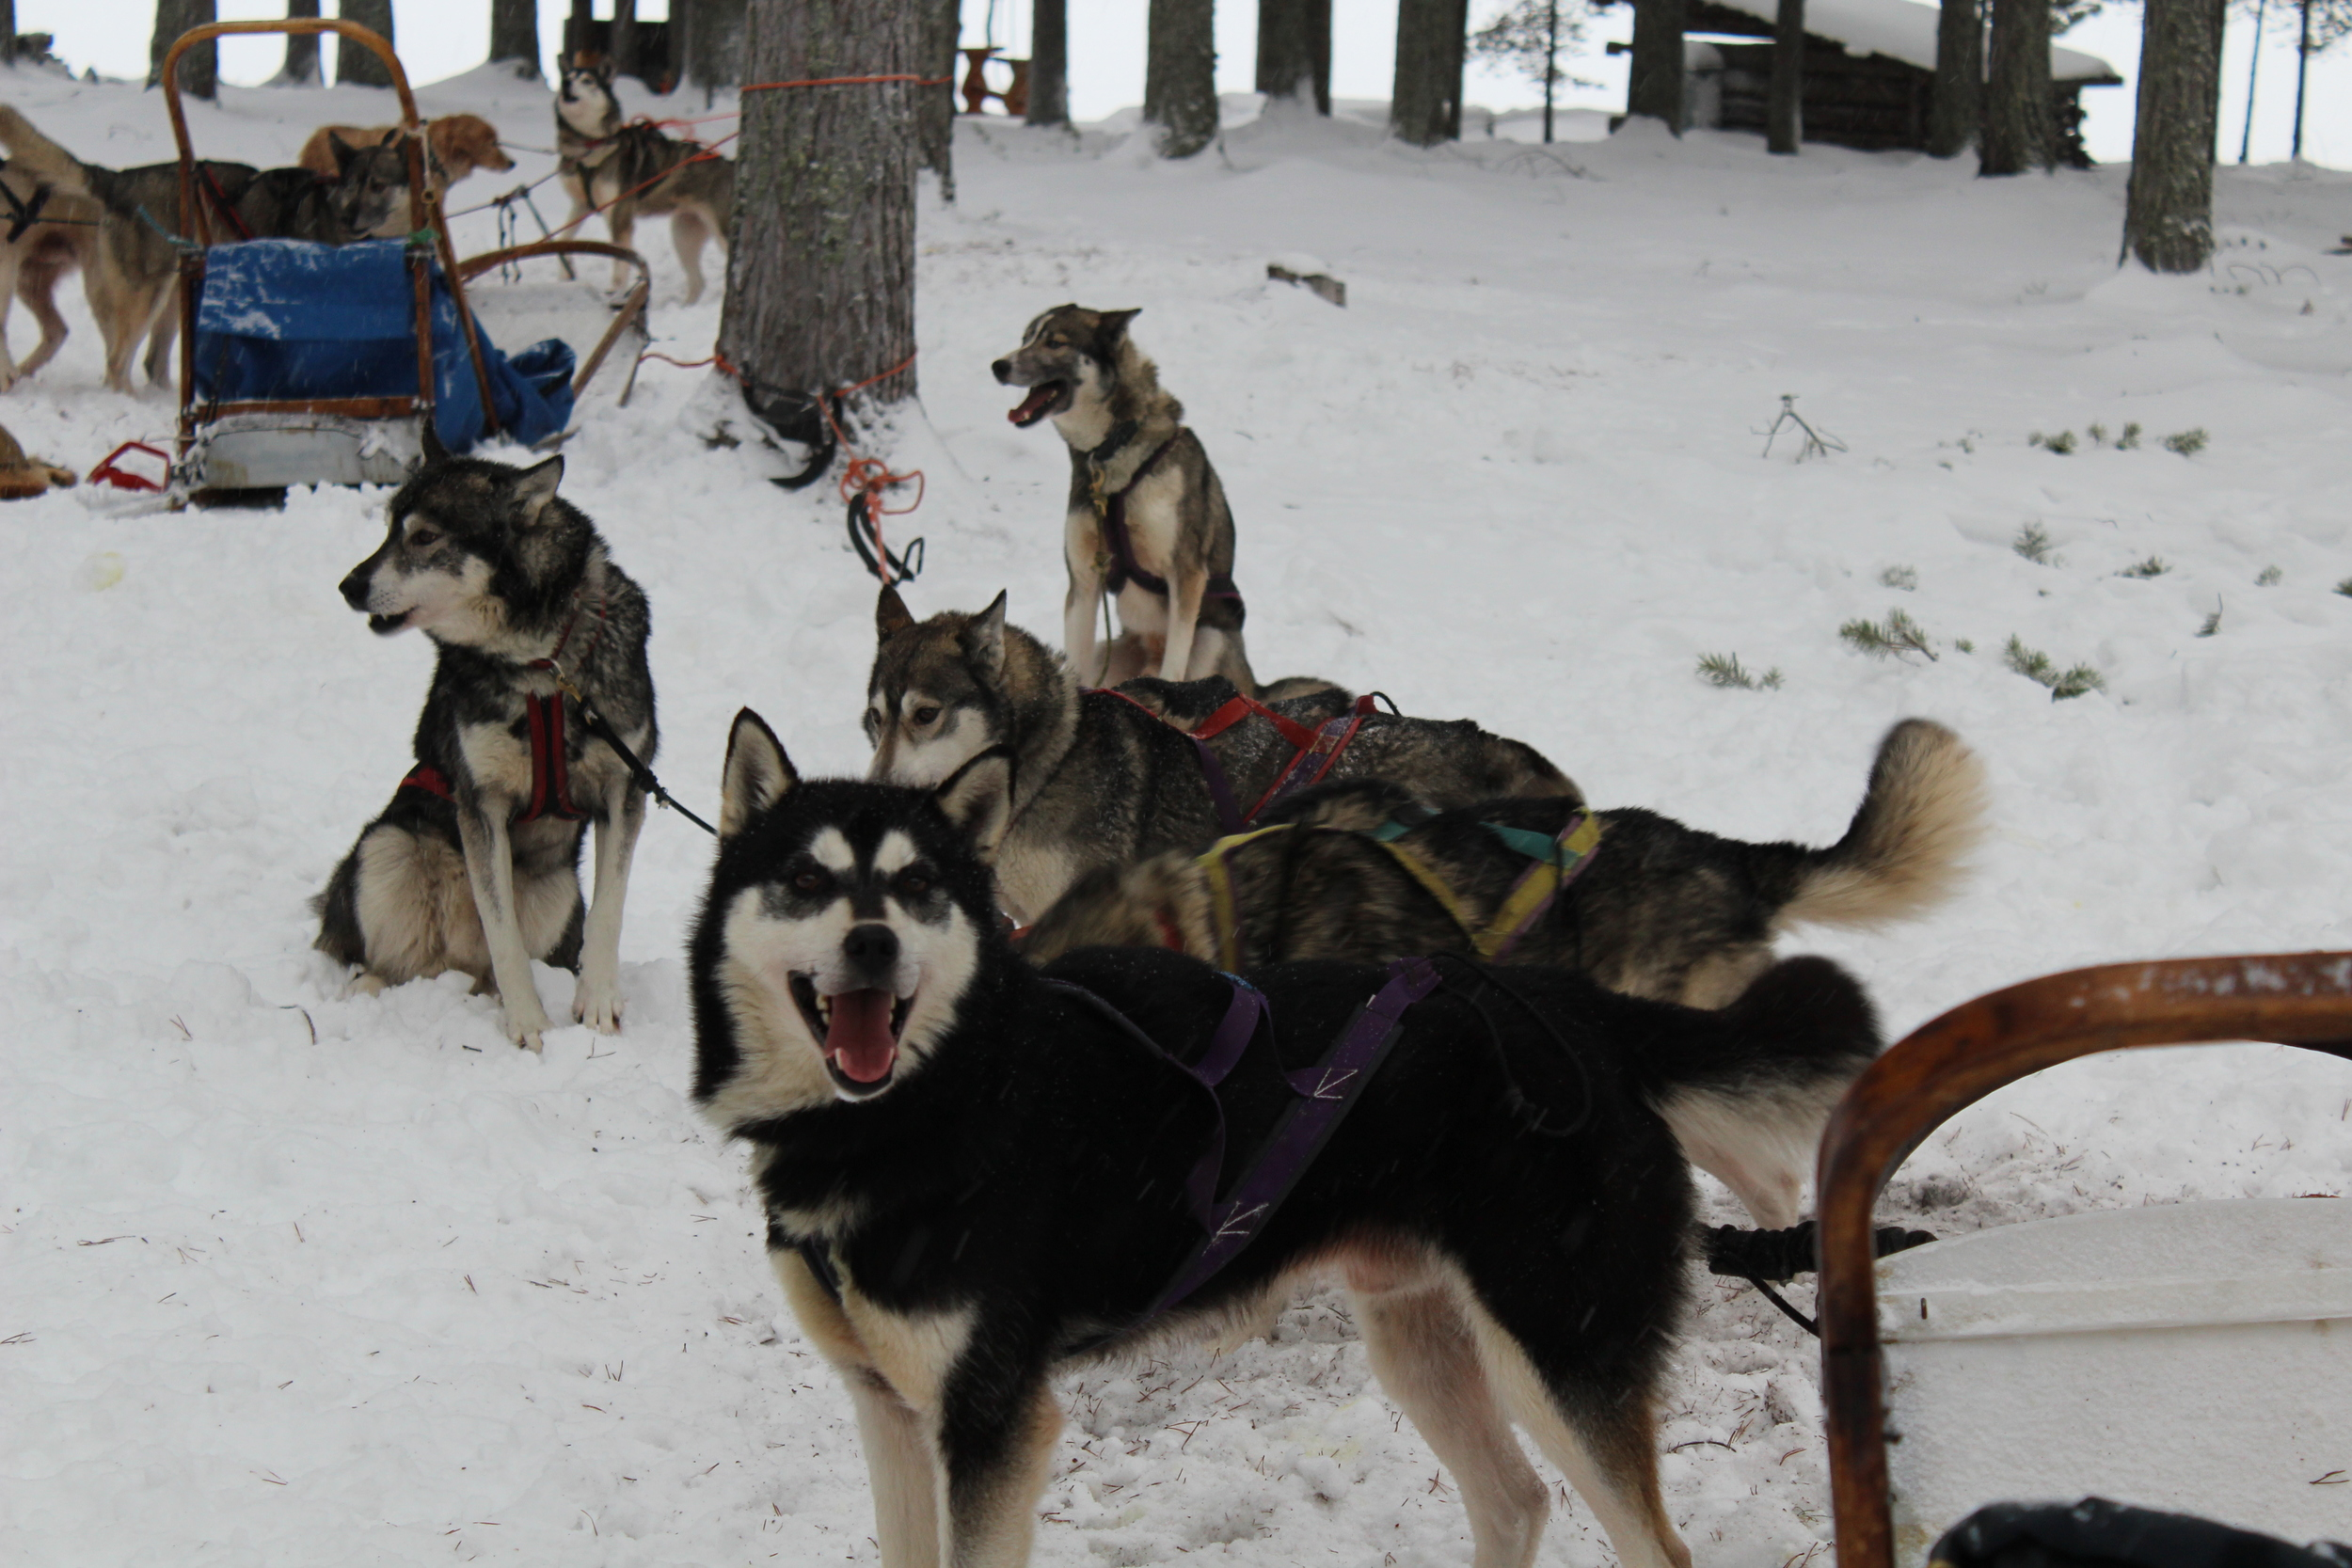 Here are the dogs all harnessed up for a sled ride. Although they are sitting here, often they are so excited to get going that sleds are ALWAYS tied to a tree or anchored in the snow with a big metal spike.